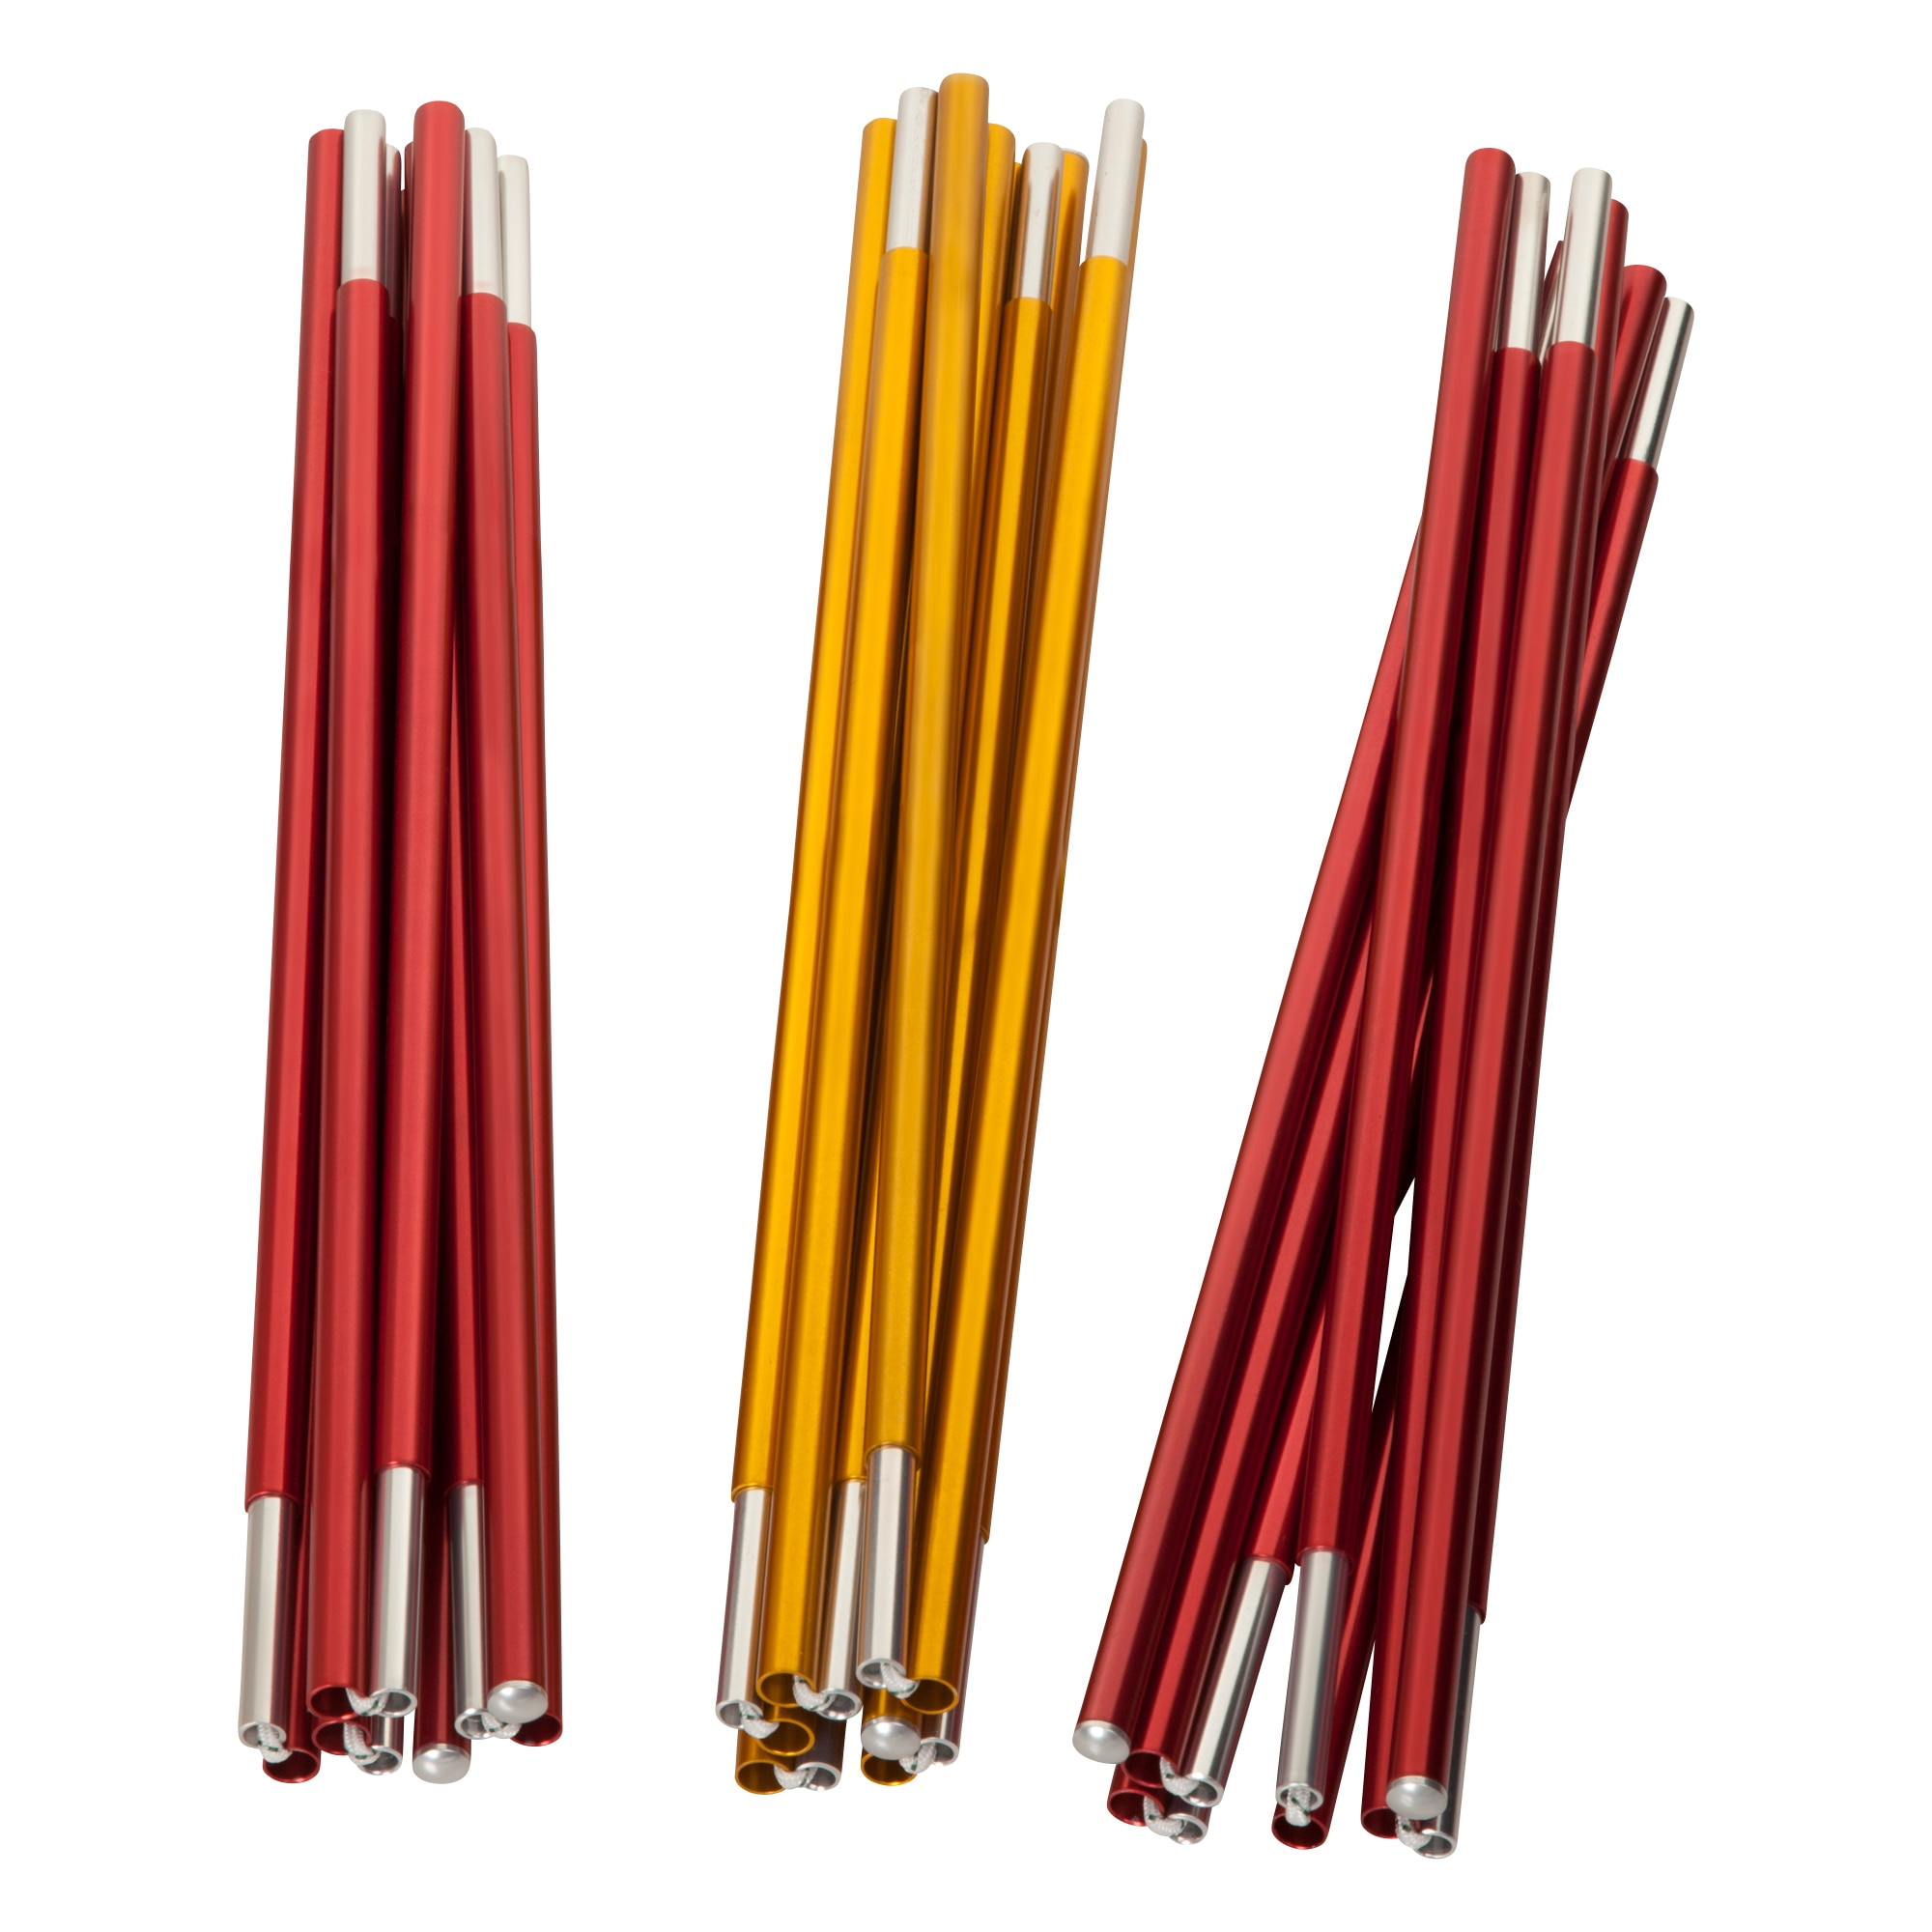 Tent Poles for 3-Pers Tent (3 Poles)